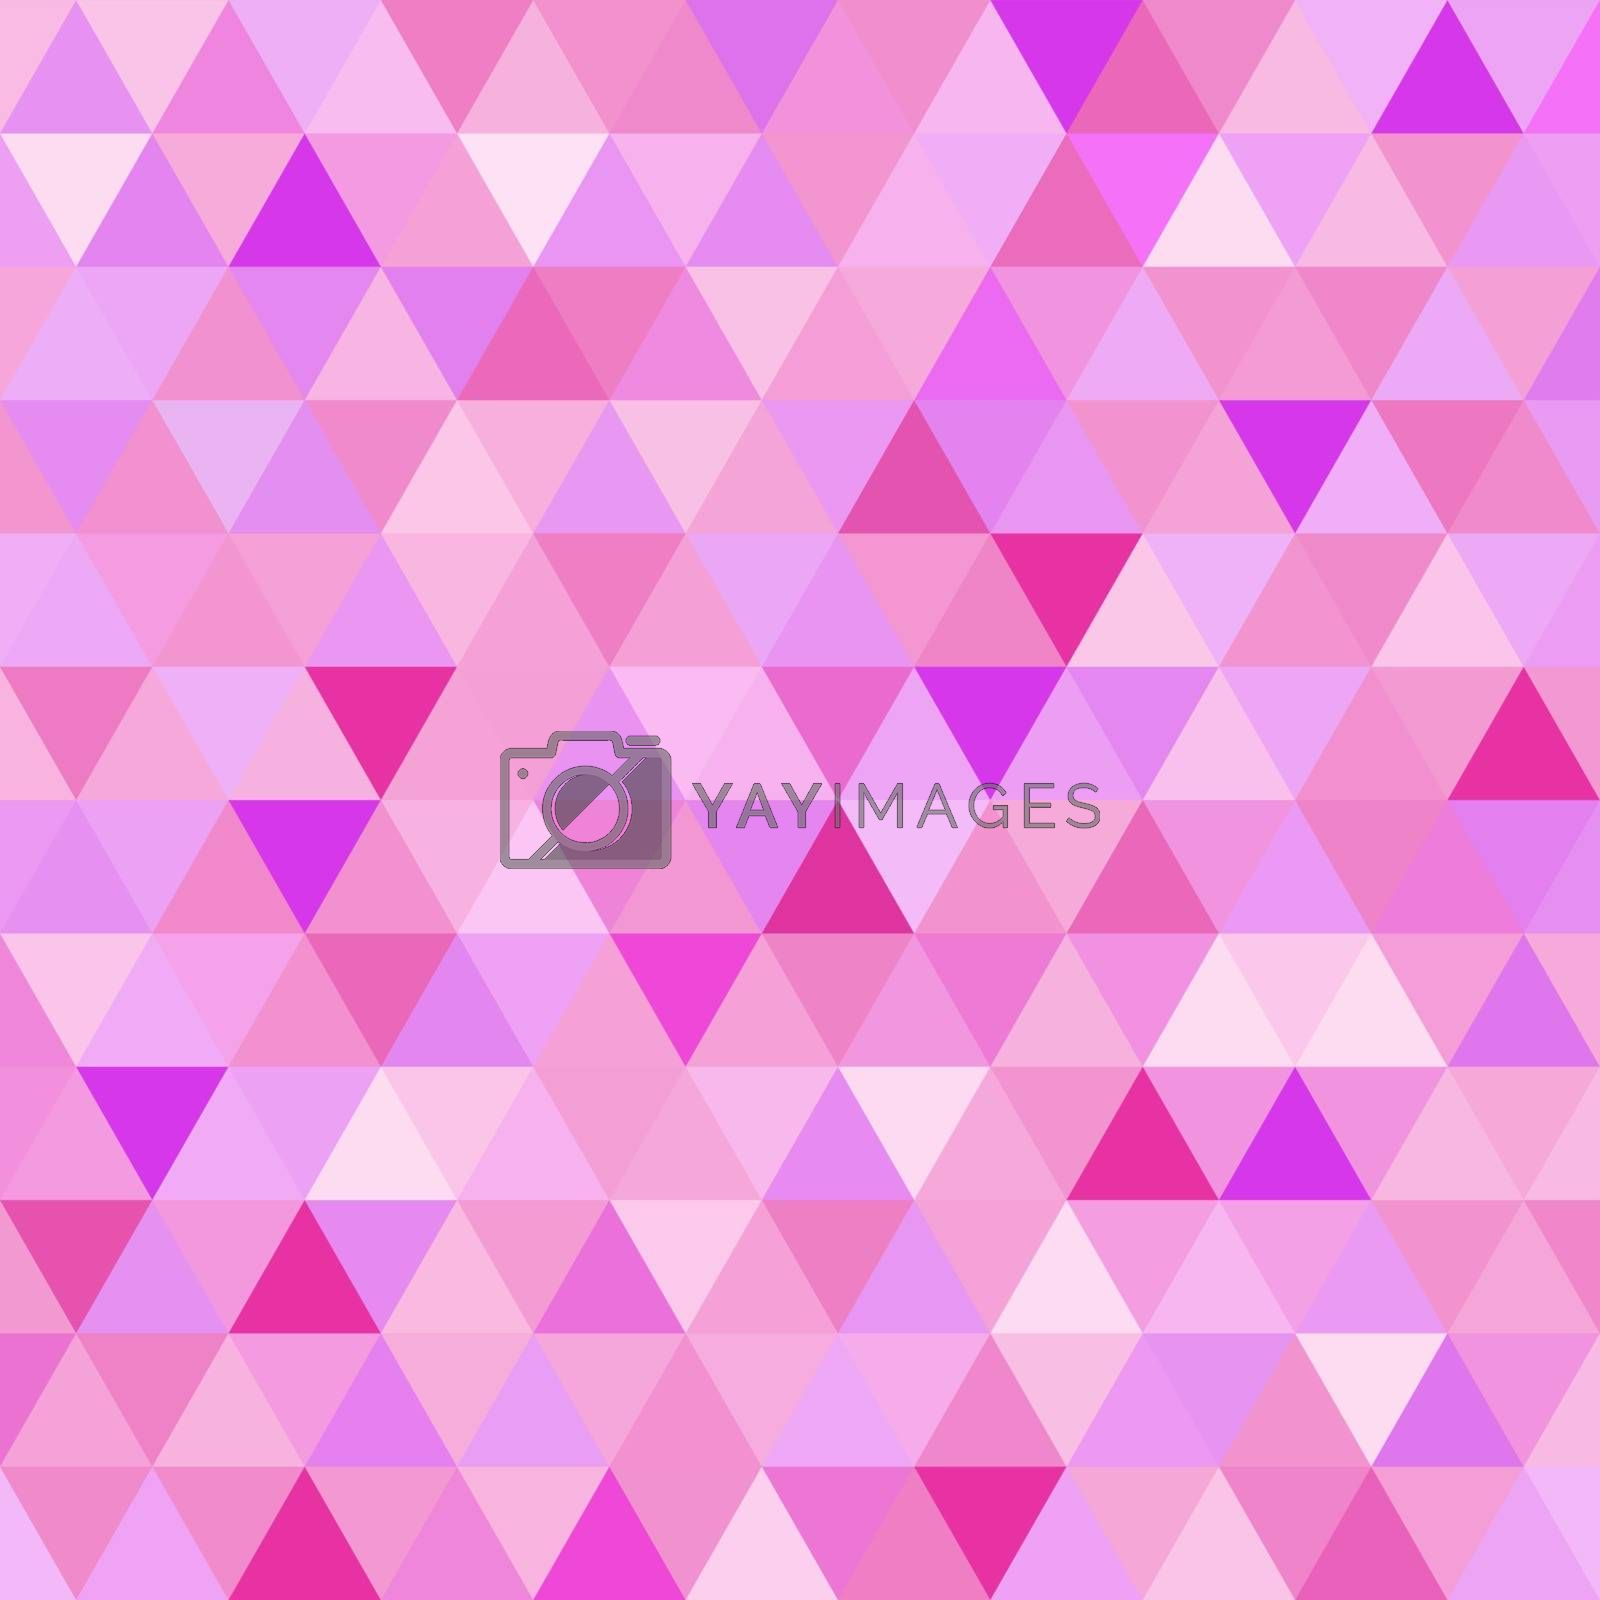 Geometry abstract pink vintage retro seamless pattern triangle tiled mosaic background. Ideal for fabric, wrapping paper, or print. EPS10 vector file.